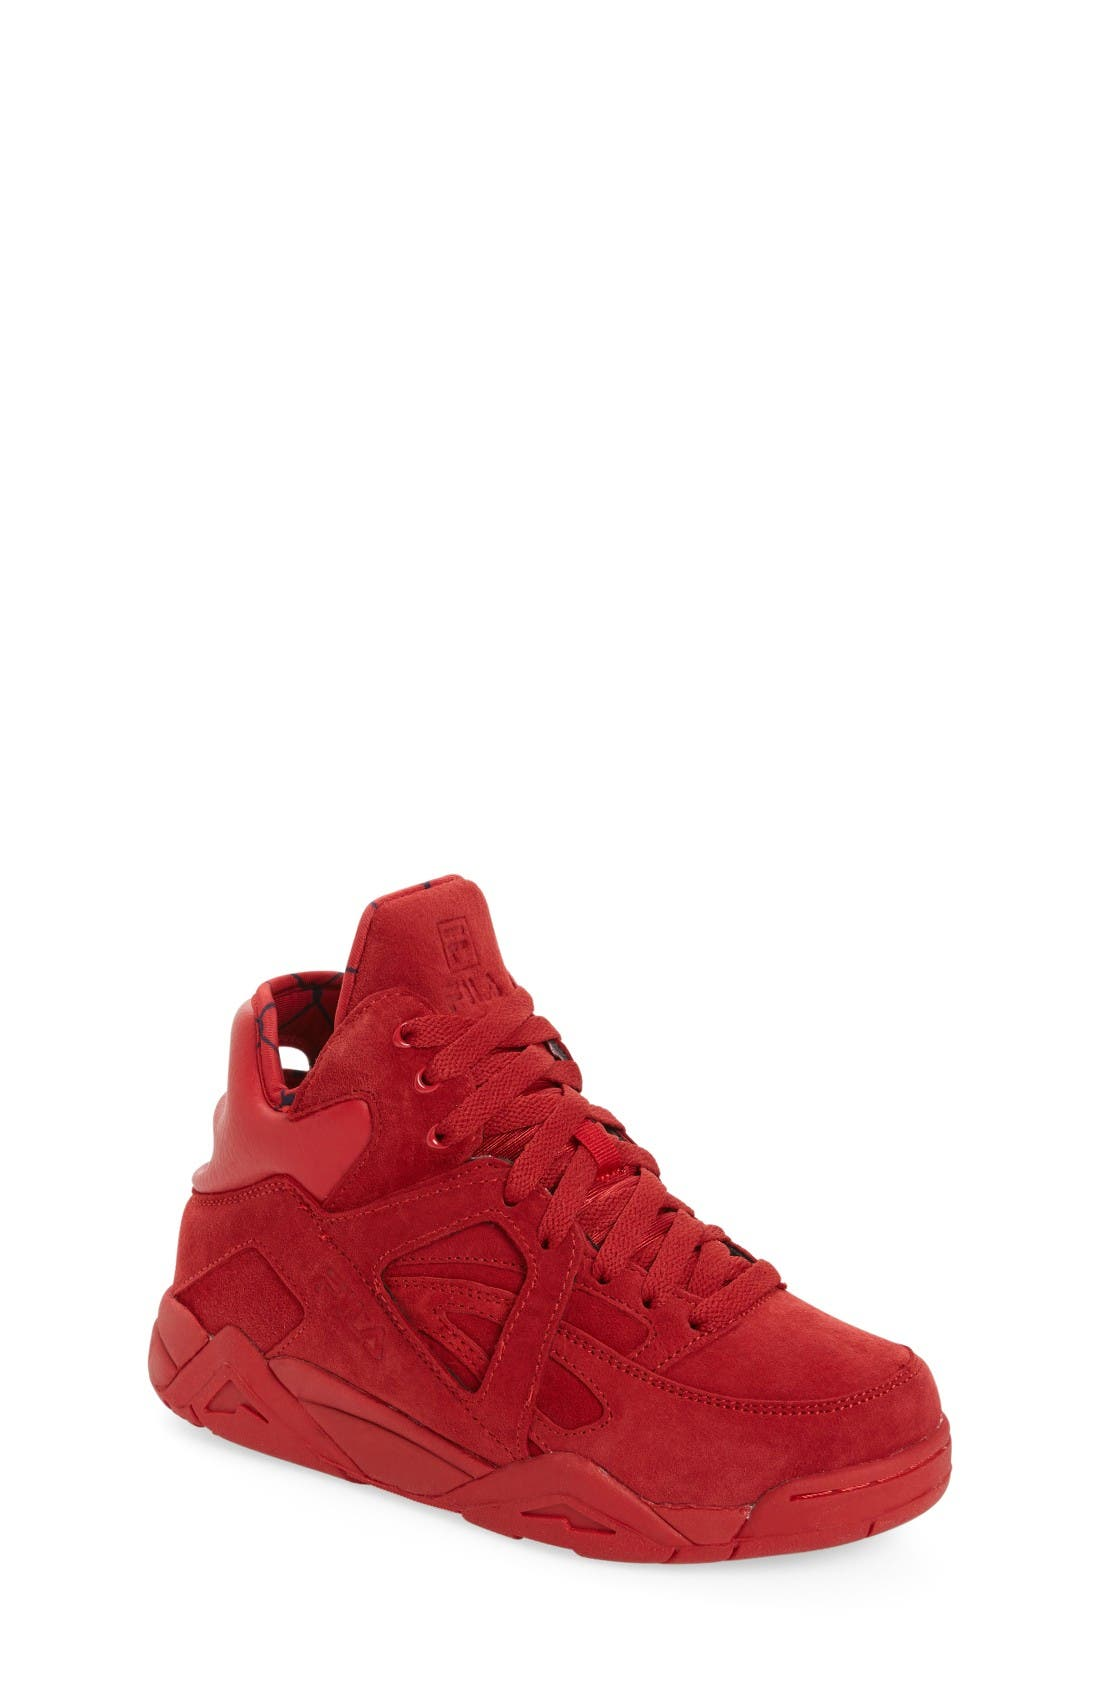 Main Image - FILA The Cage High Top Sneaker (Big Kid)